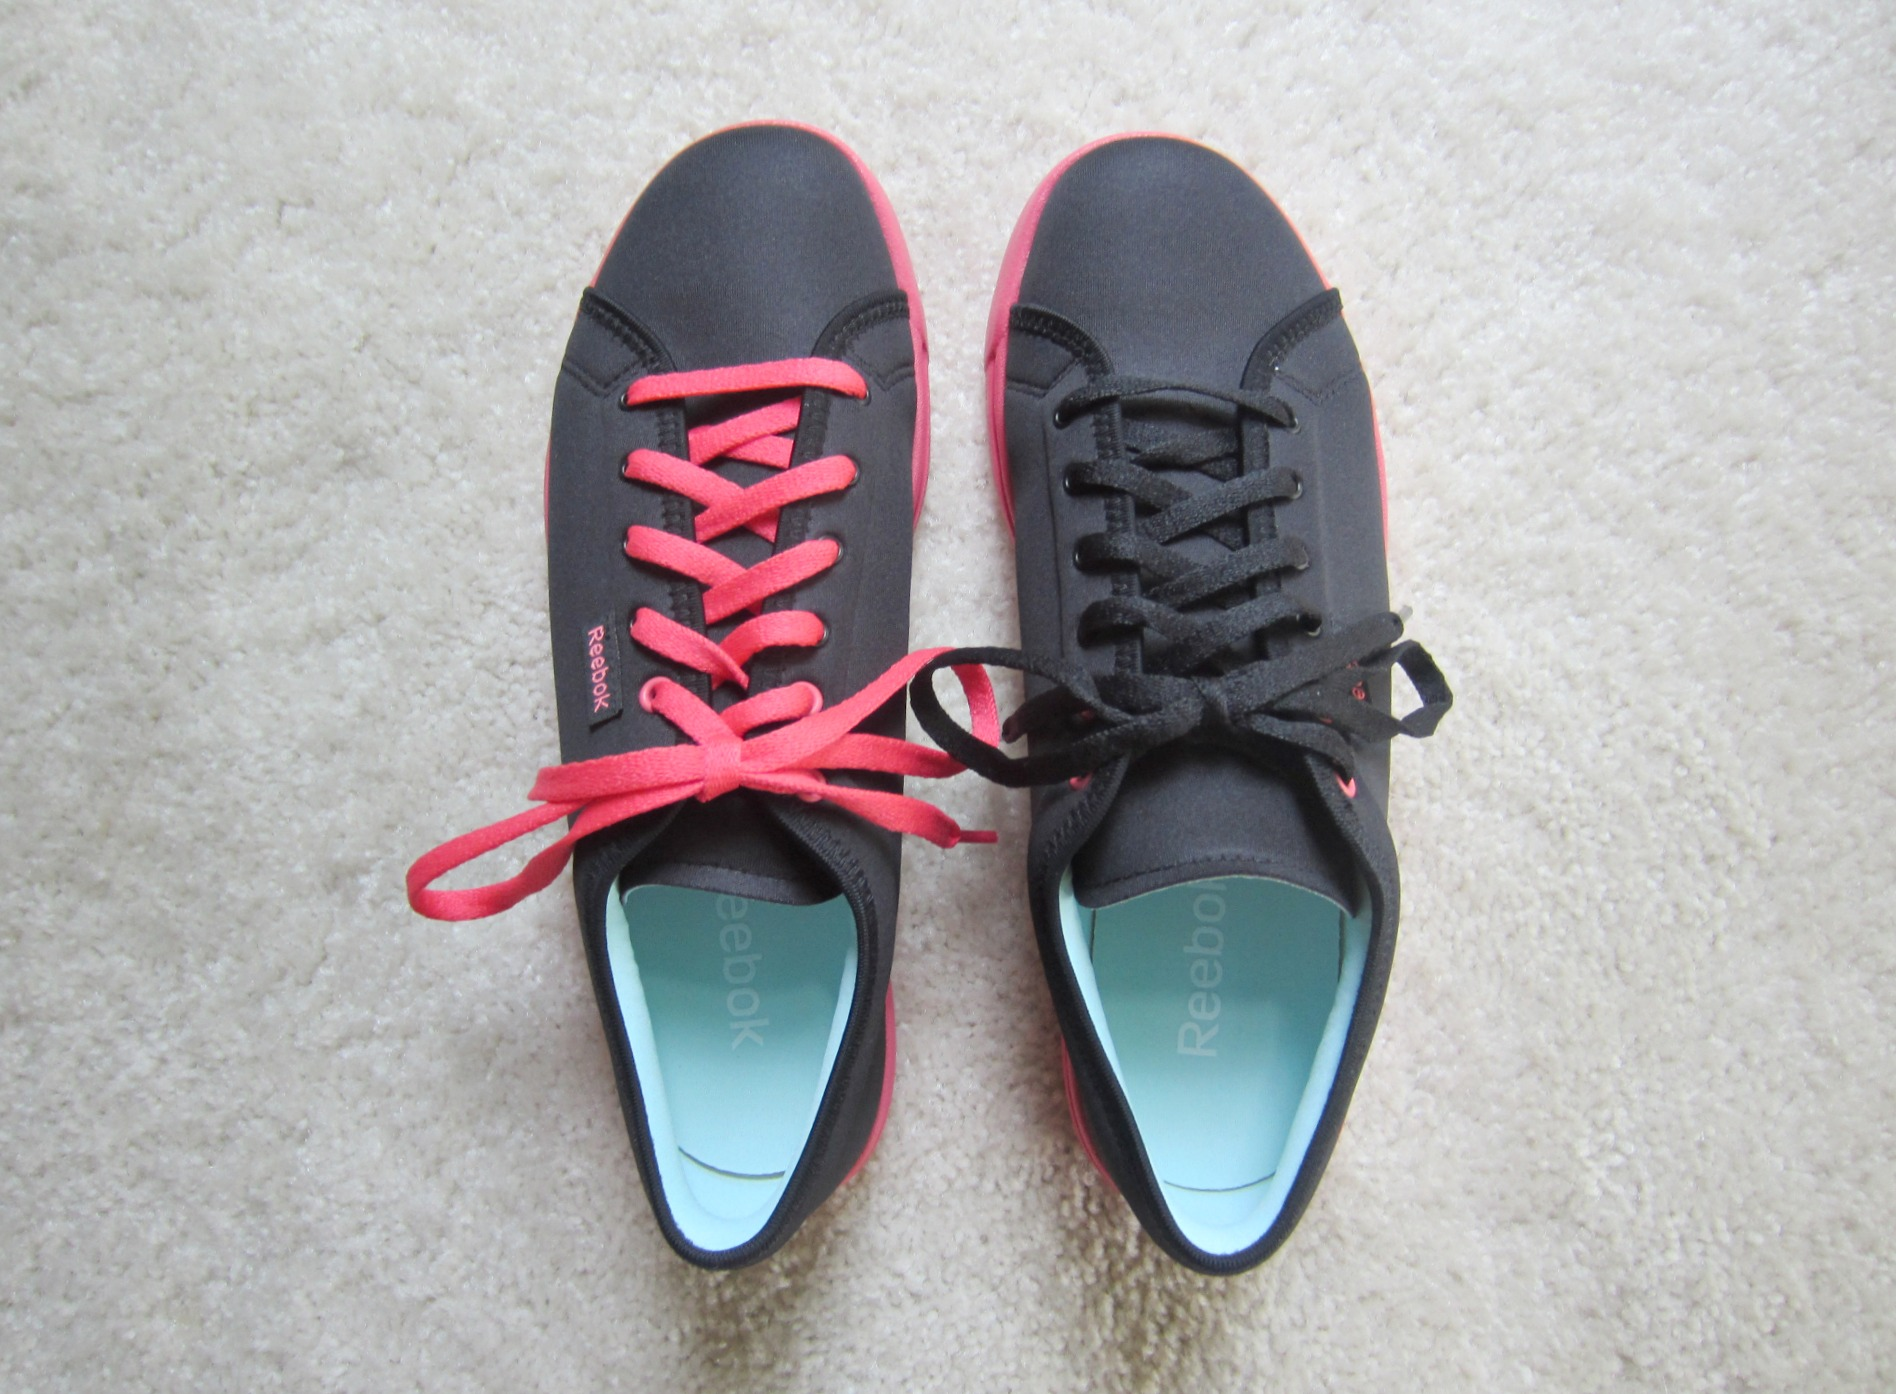 Reebok Skyscapes pink and black sneakers